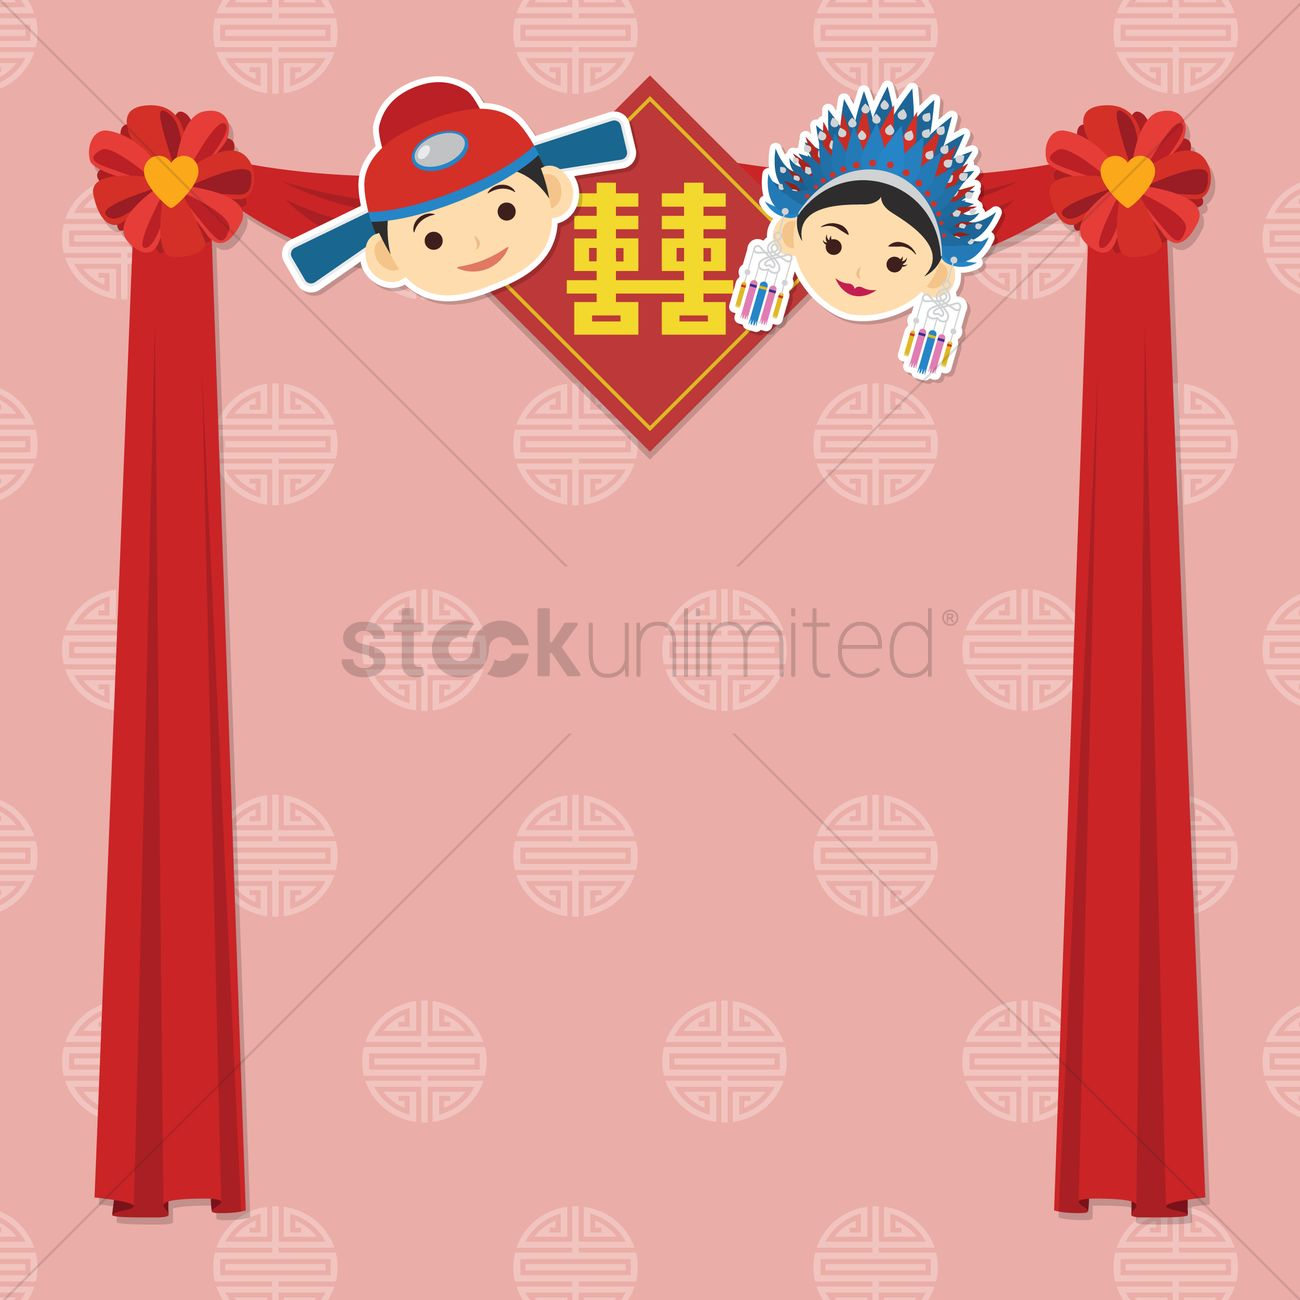 Chinese wedding invitation card design Vector Image - 1244214 ...